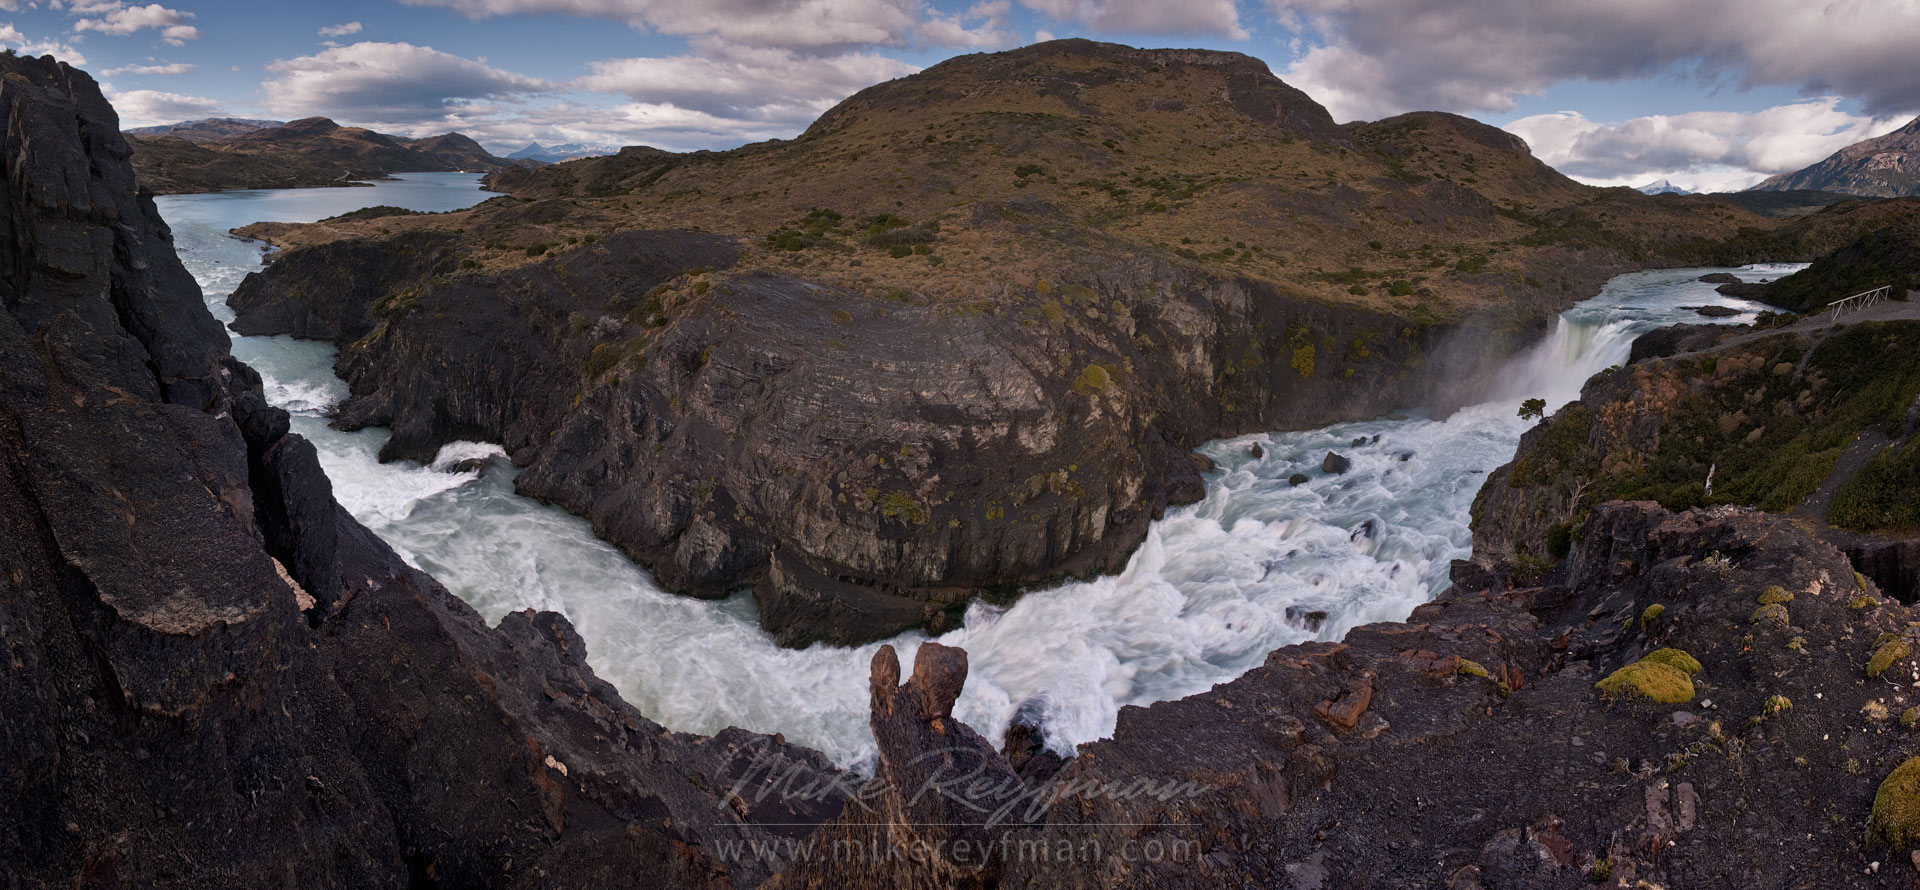 Salto Grande falls and Rio Paine rapids between Lago Pehoe and Lago Nordenskjold. Panoramic. Torres del Paine National Park, Magallanes and Antartica Chilena Region XII, Patagonia, Chile. - Torres-Del-Paine-National-Park-Patagonia-Chile - Mike Reyfman Photography